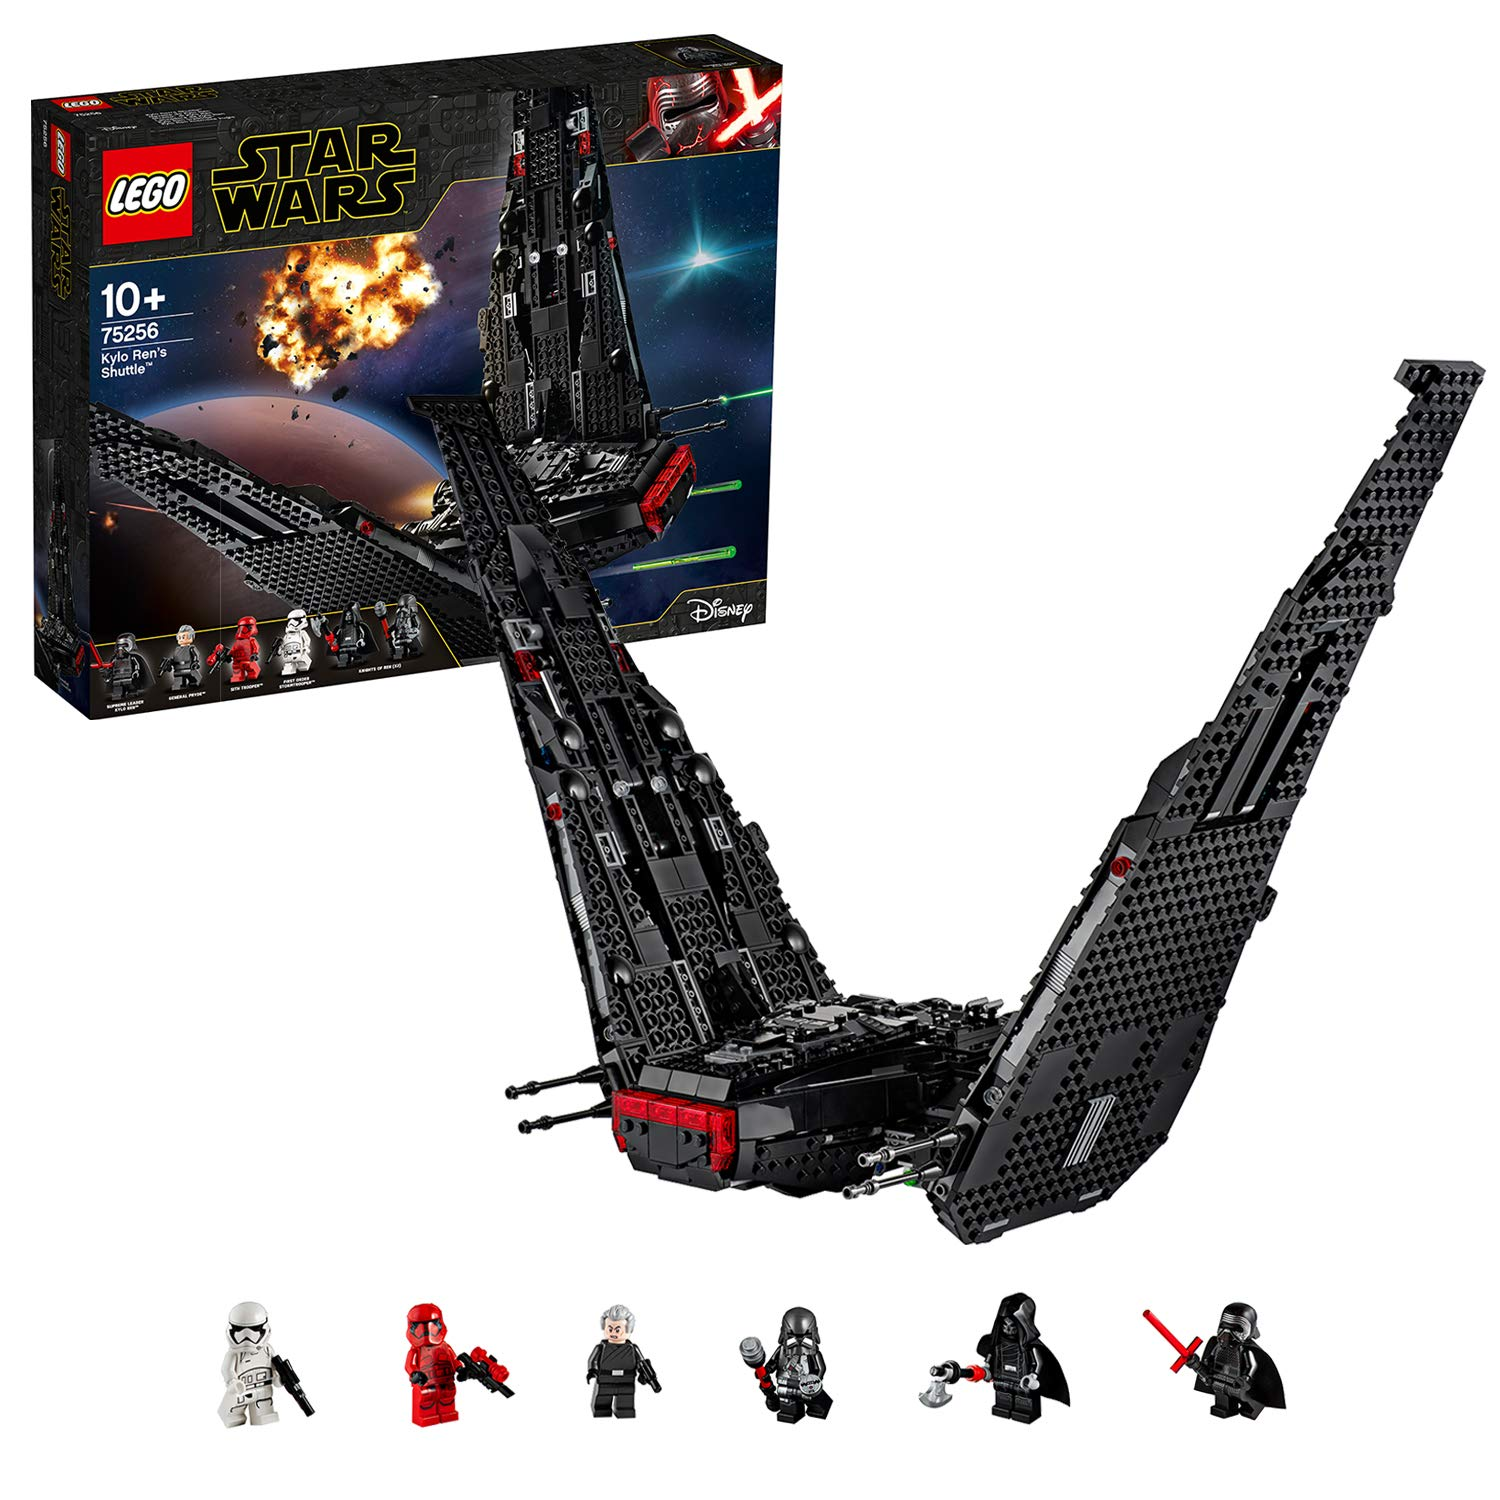 Buy Lego Kylo Ren S Shuttle Building Blocks For Kids 1005 Pcs 75256 Online At Low Prices In India Amazon In